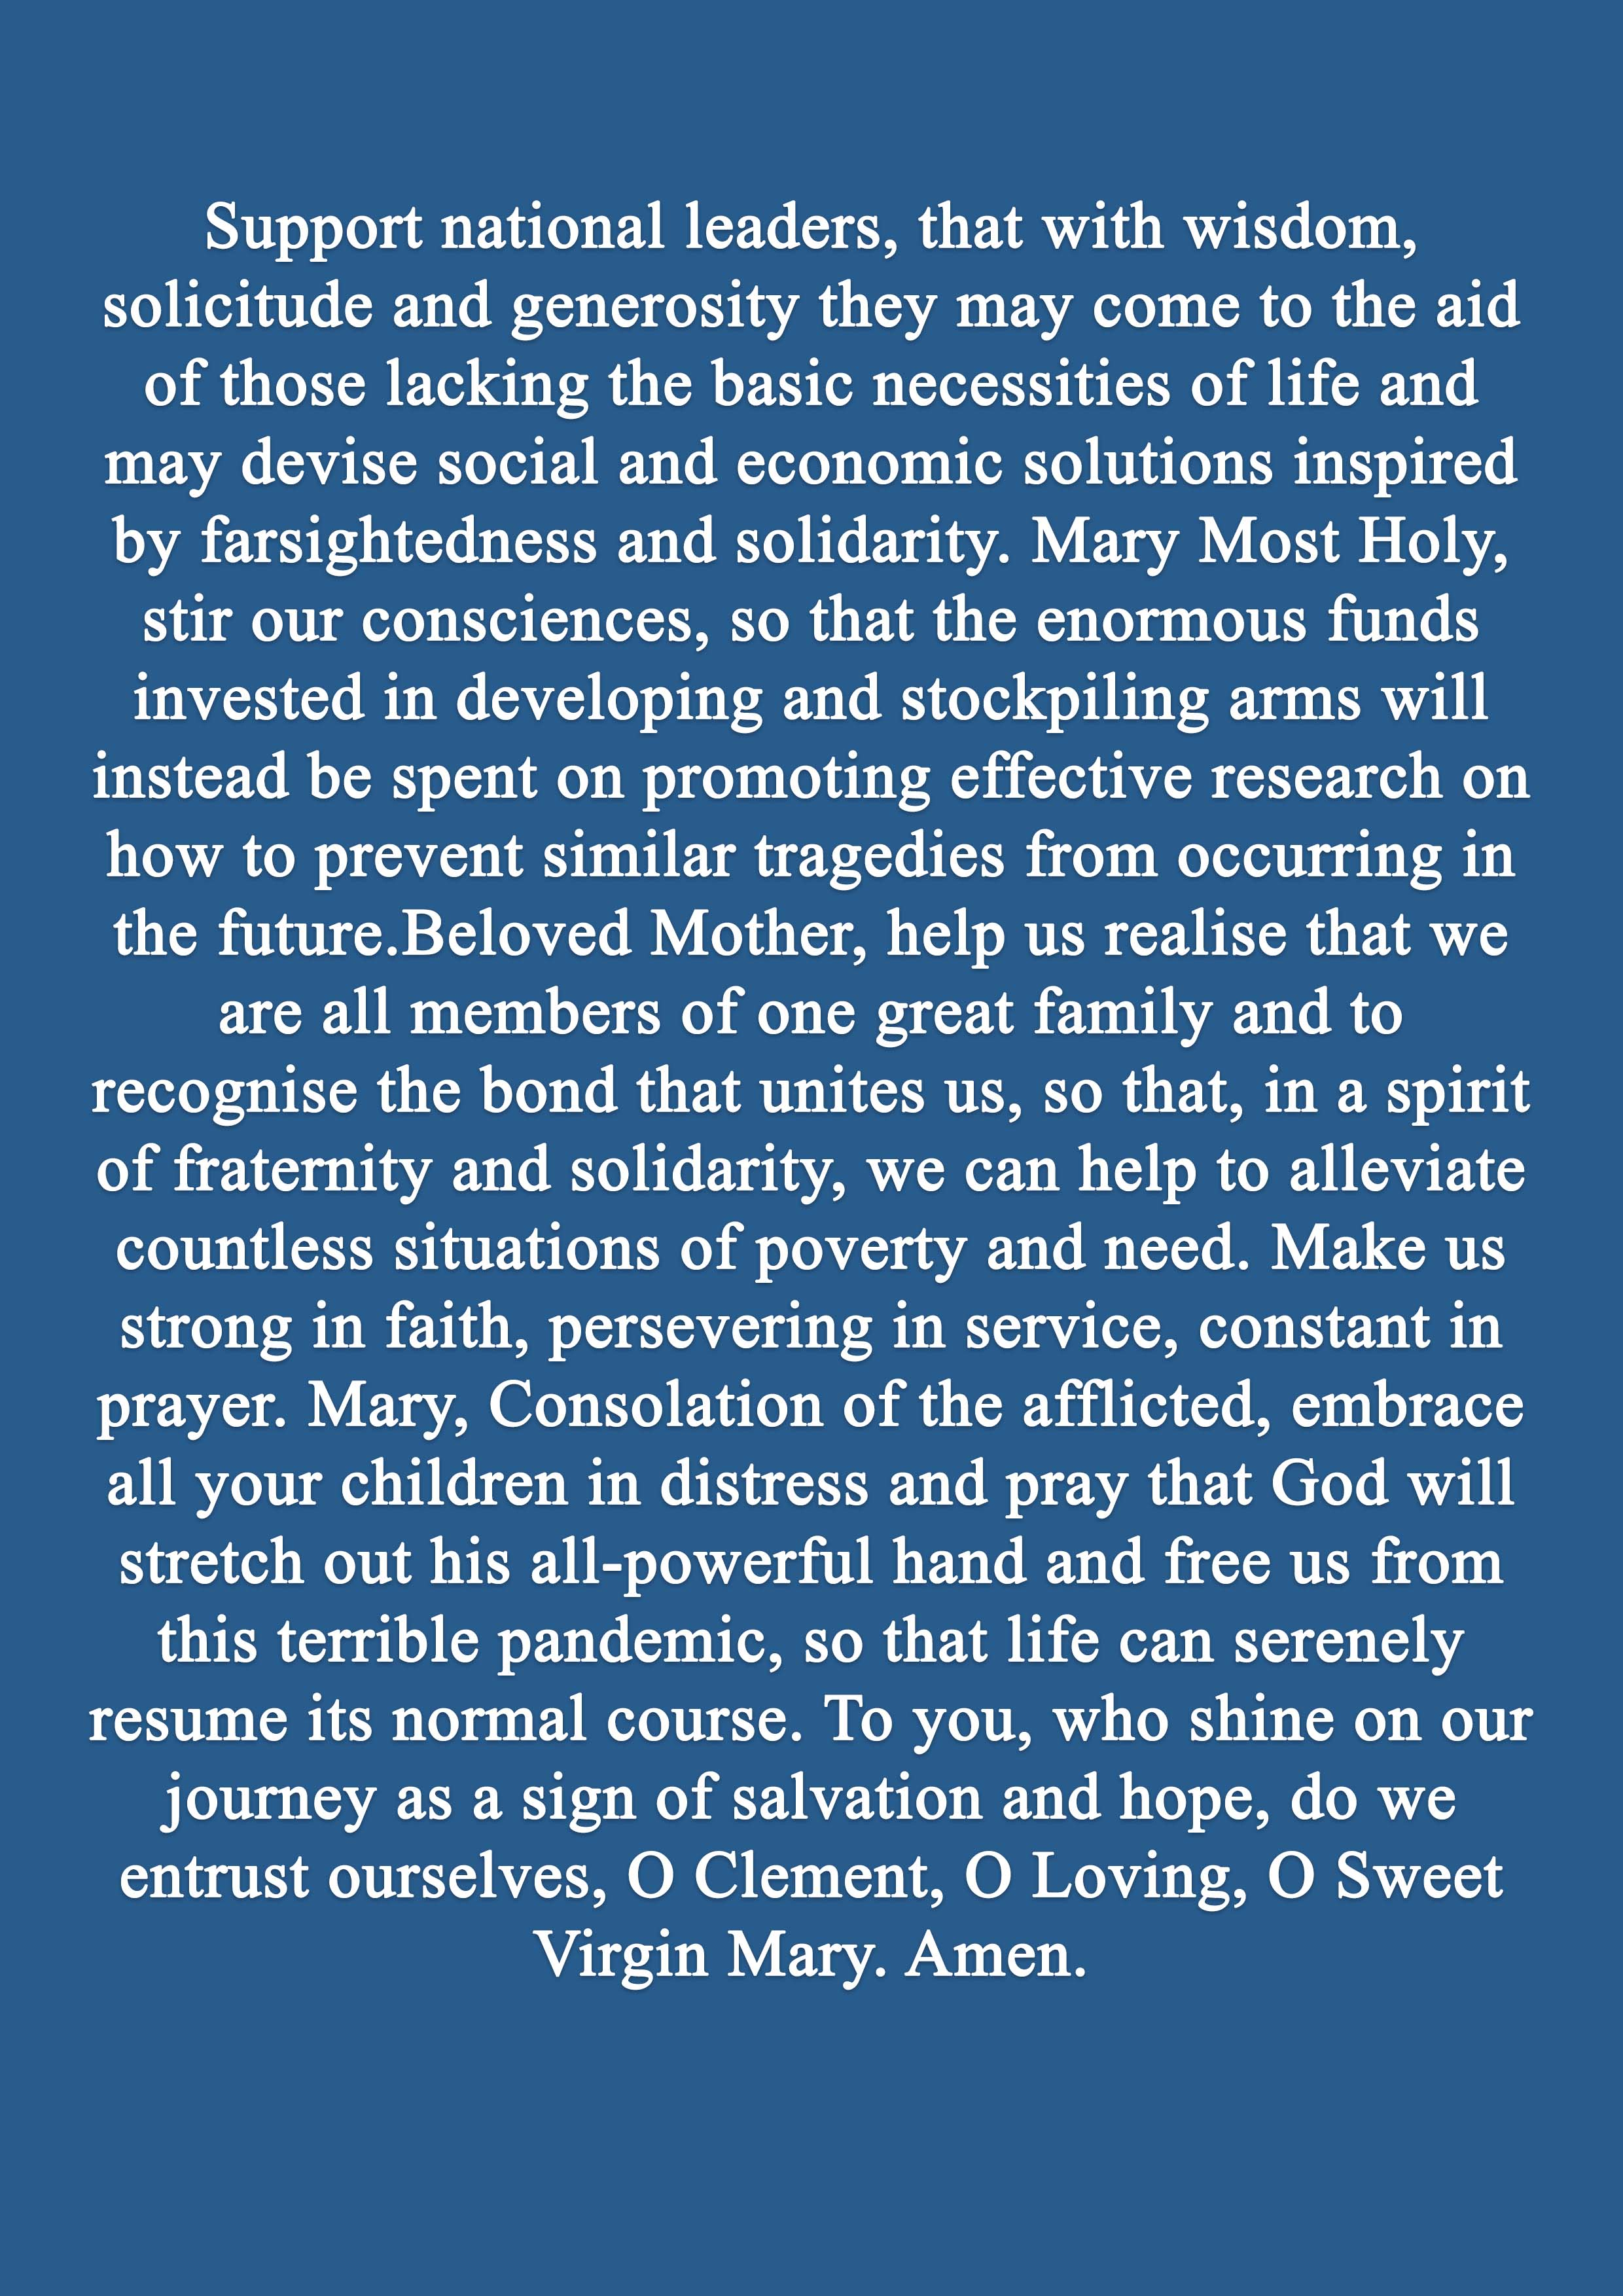 Pope Francis Prayer for May 3b